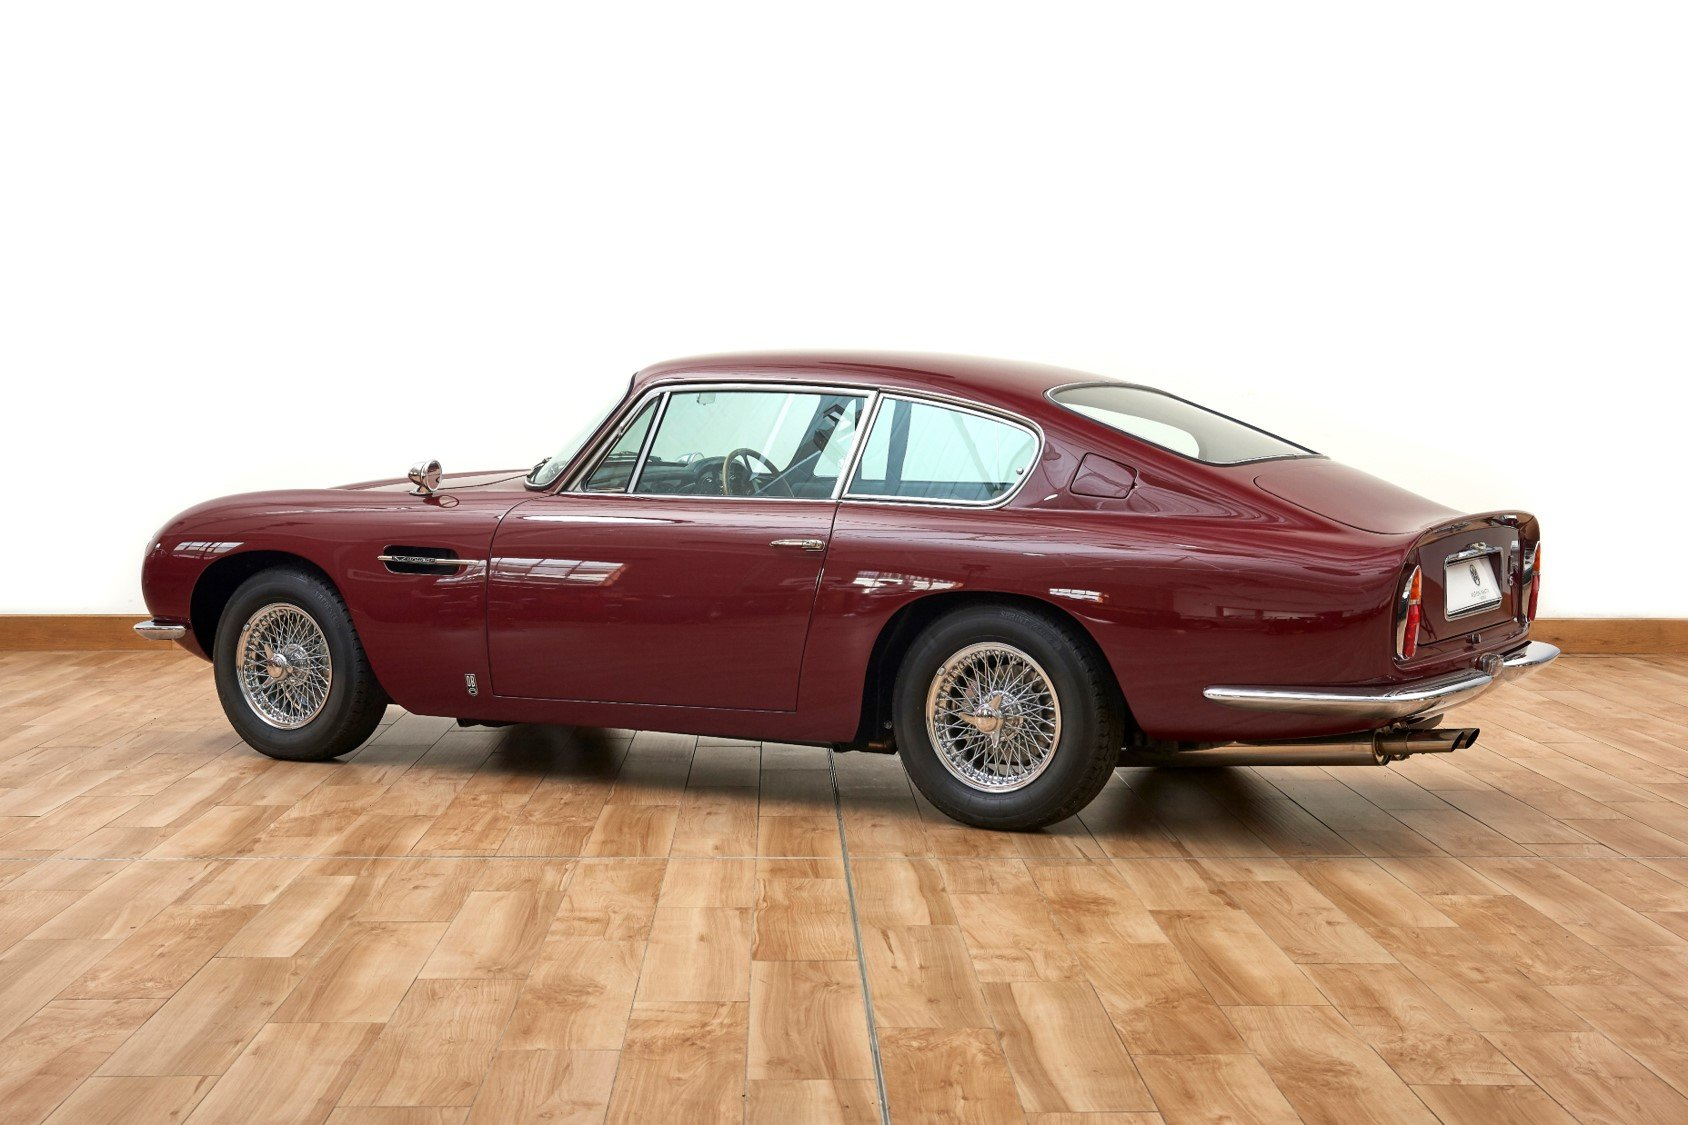 1966 Aston Martin DB6 Vantage Saloon For Sale (picture 2 of 6)